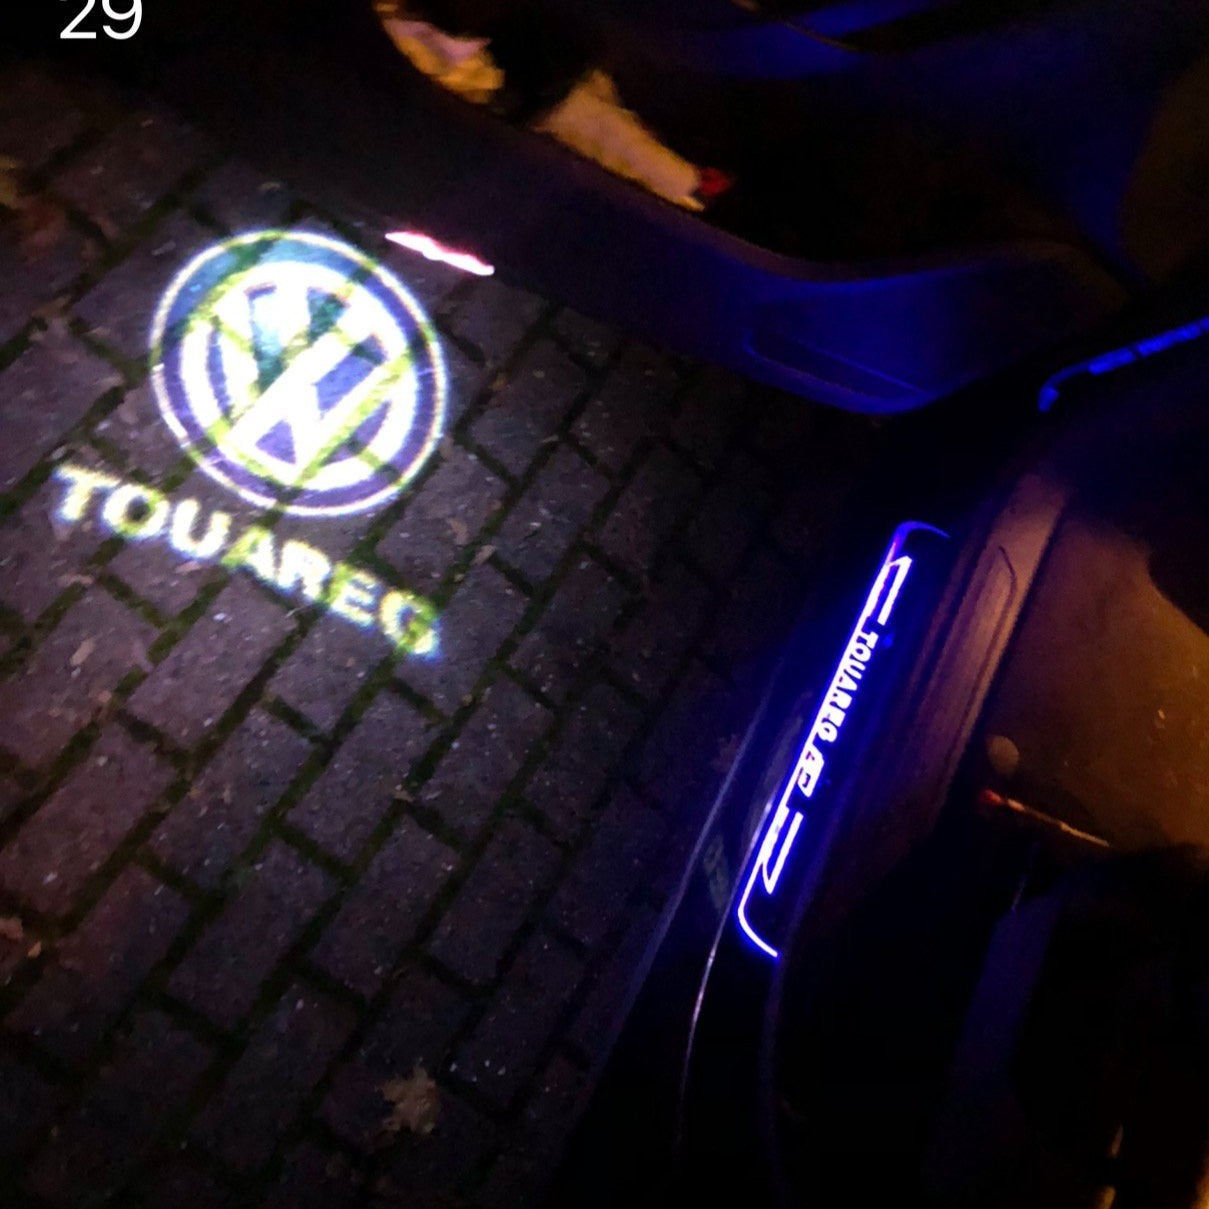 Volkswagen Door lights TOUAREG Logo  Nr. 82  (quantity 1 = 2 Logo Films /2 door lights)